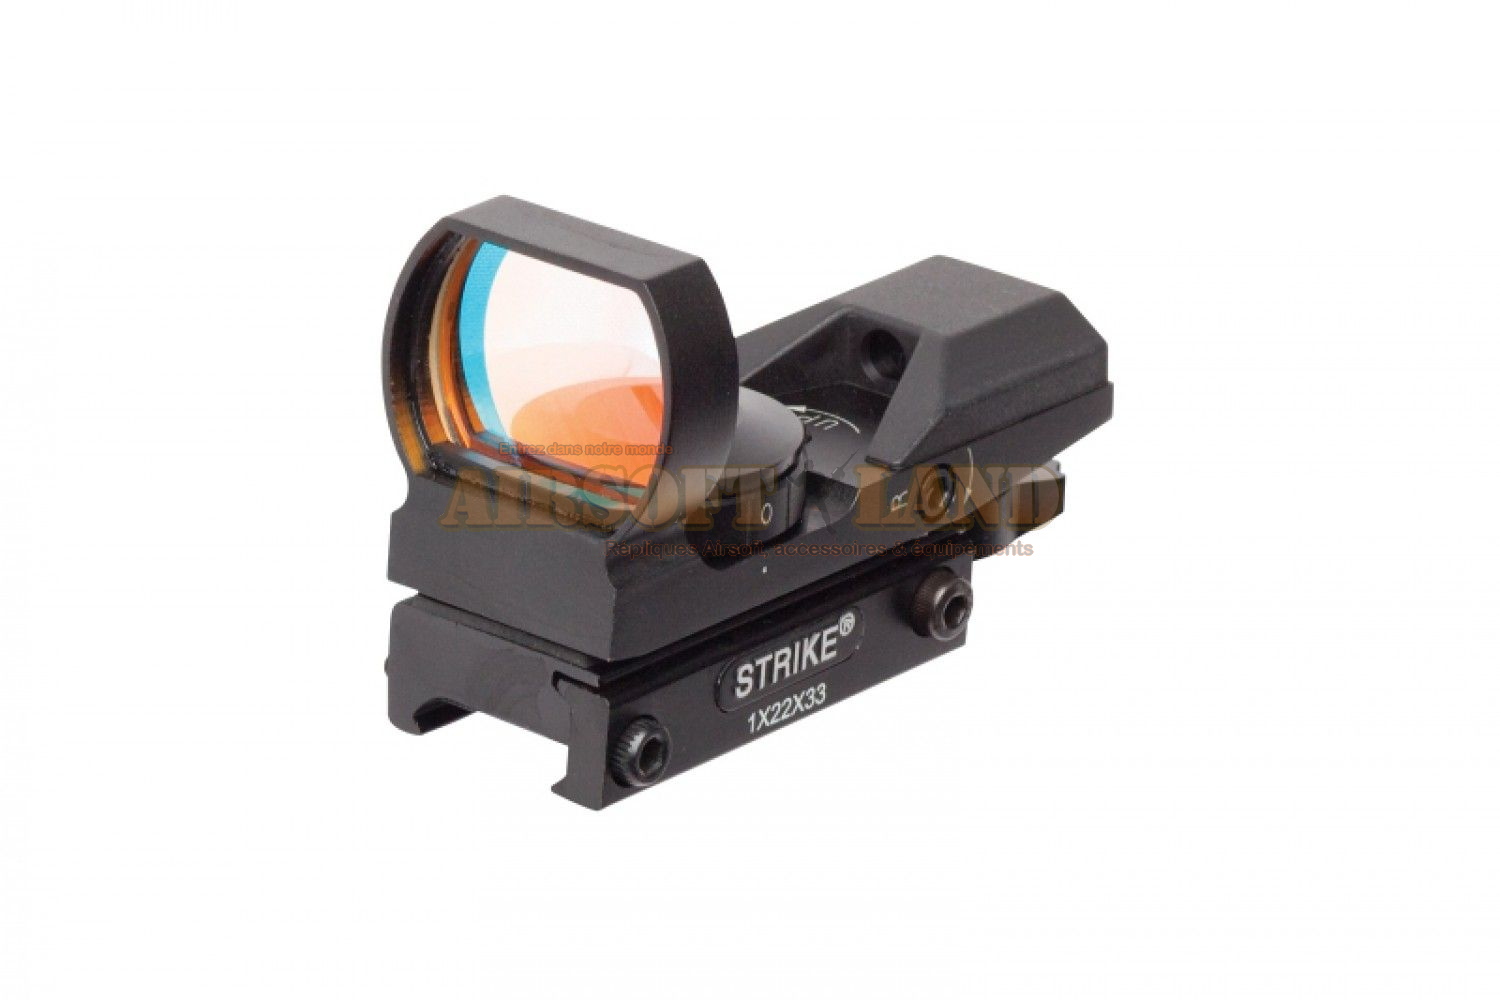 Dot sight multi reticules (x 7) 22x33 mm strike systems